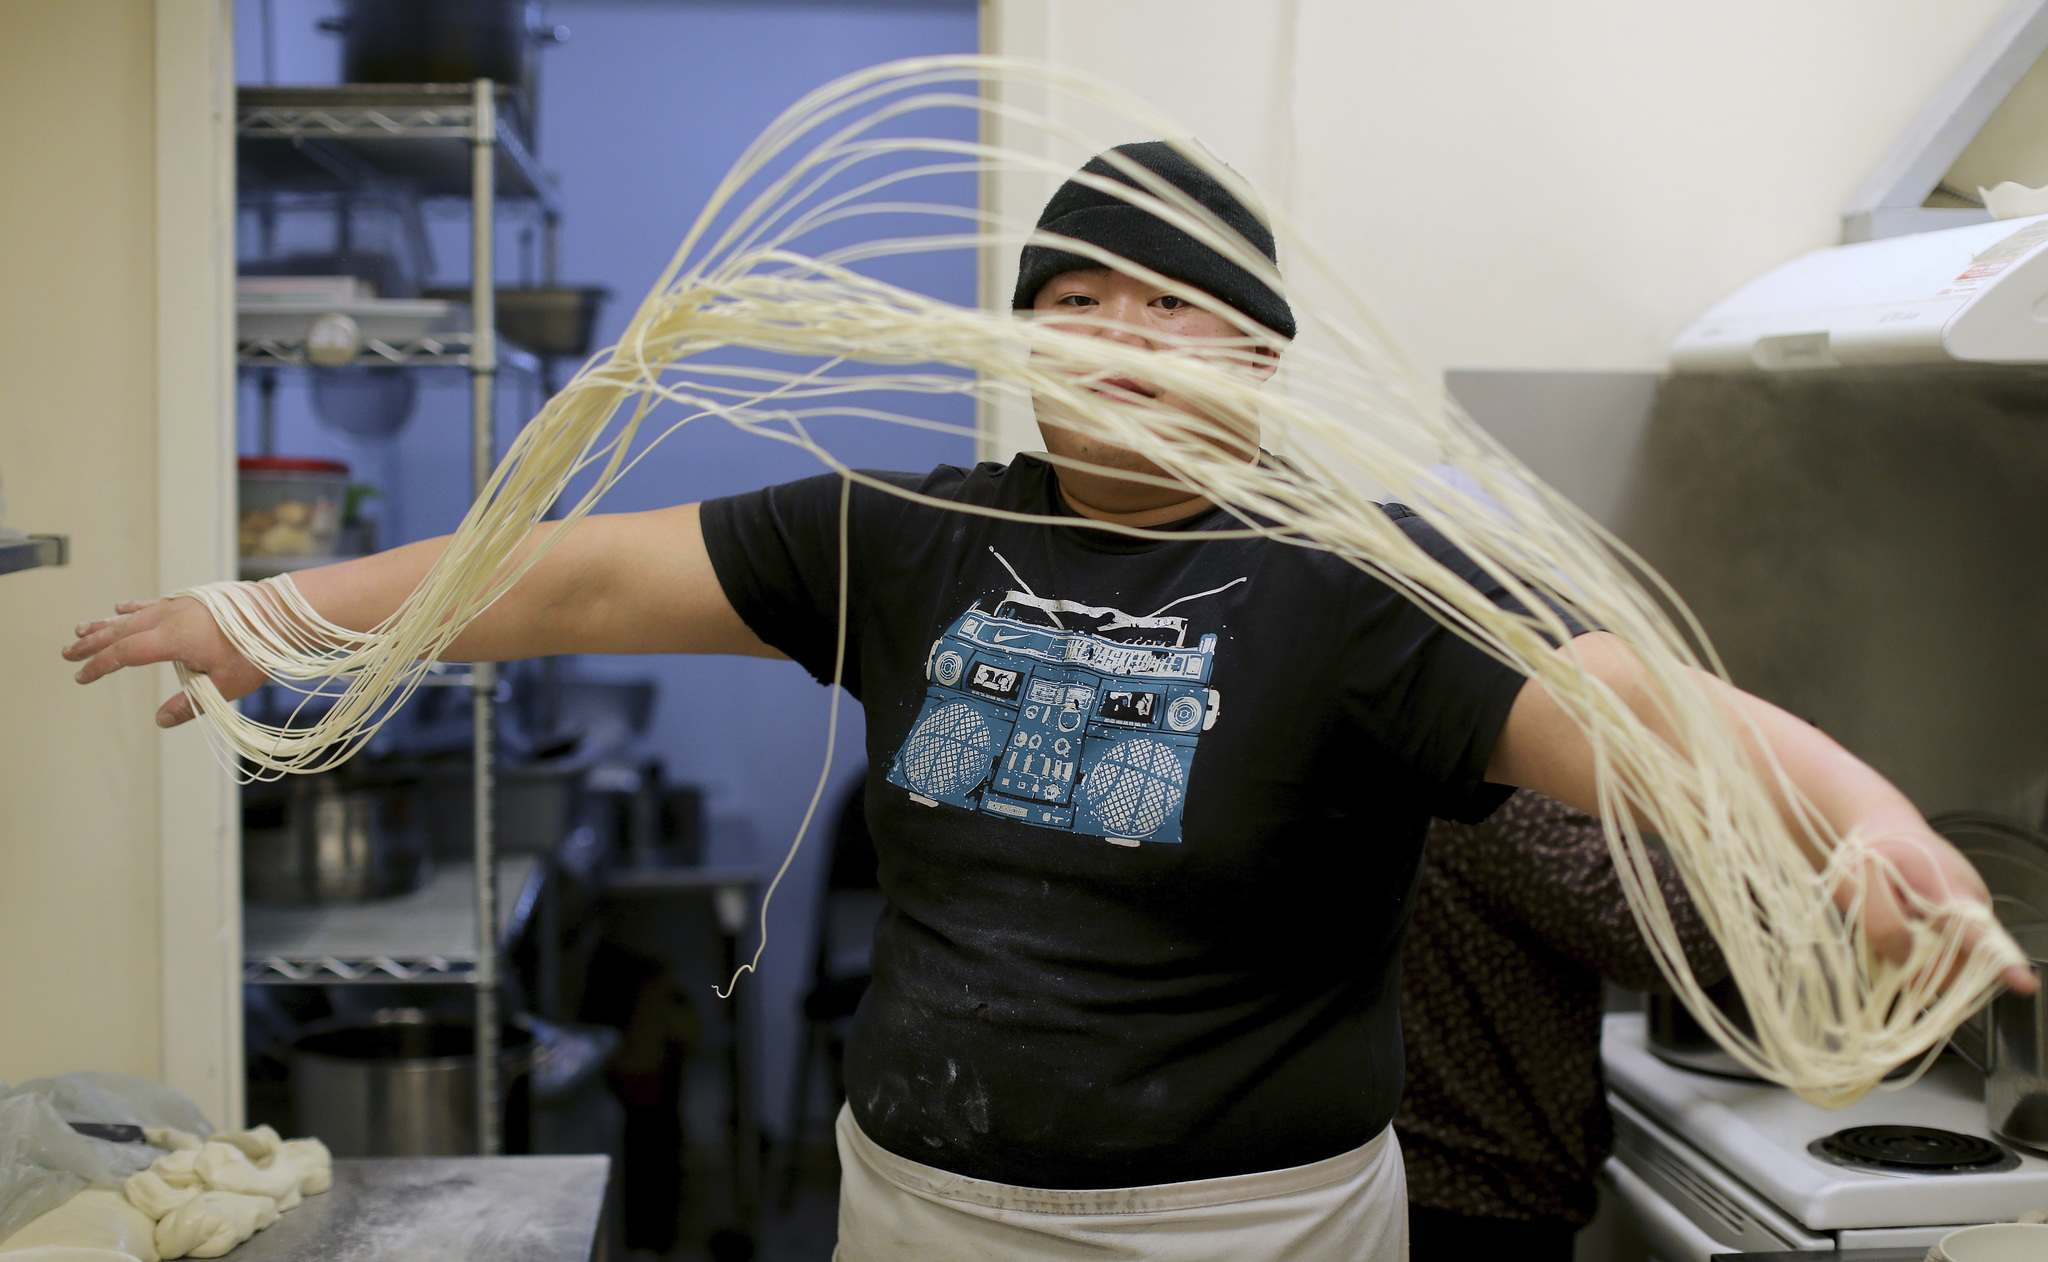 TREVOR HAGAN / WINNIPEG FREE PRESS </p><p>The name 'Dancing Noodle' is self-explanatory when you see the chef at work.</p>